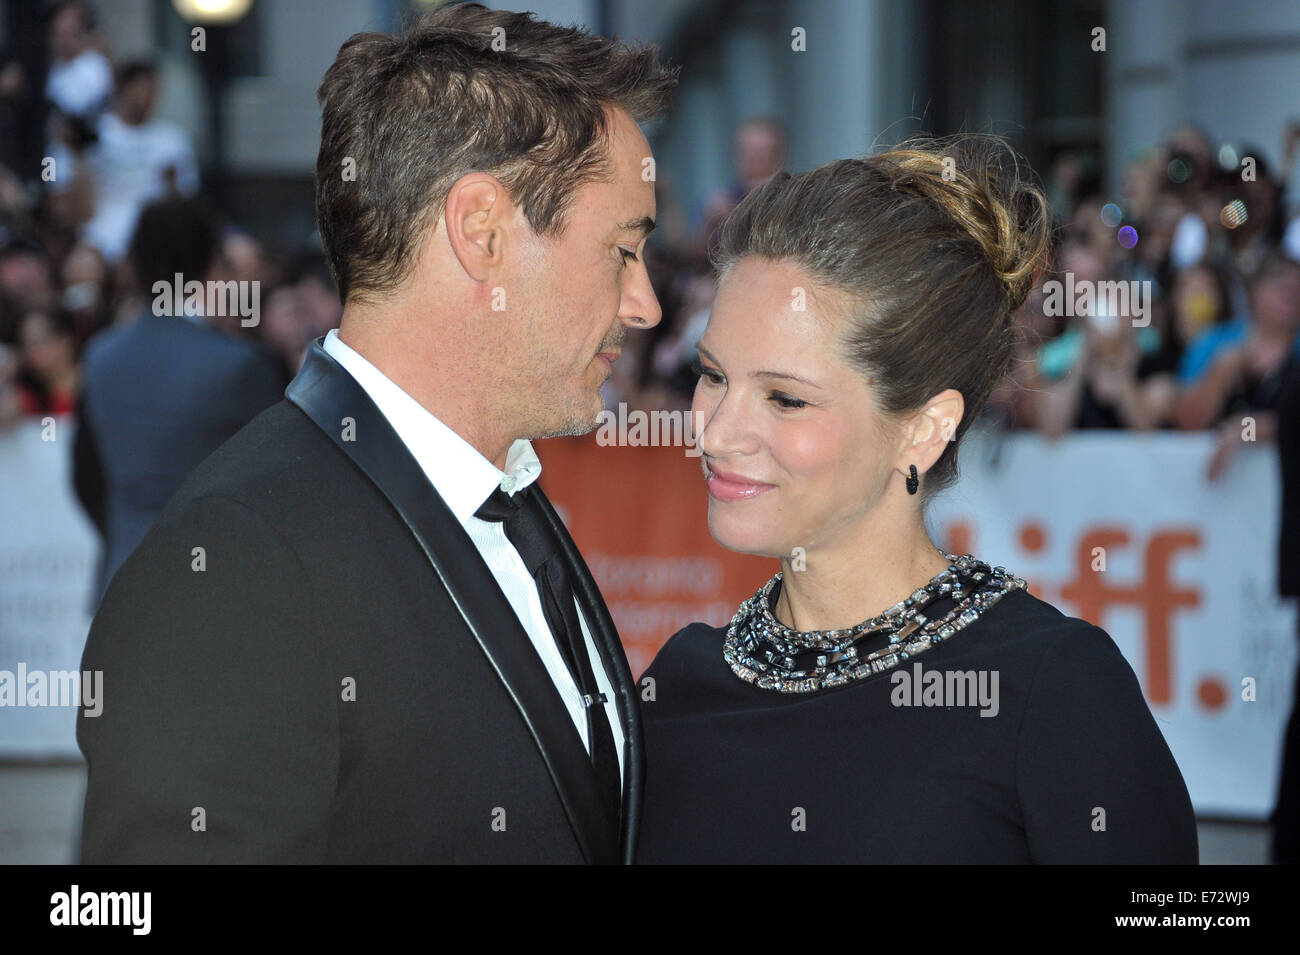 Toronto, Ontario, Canada. 4th Sep, 2014. Actor ROBERT DOWNEY JR. and producer SUSAN DOWNEY attend 'The Judge' - Stock Image